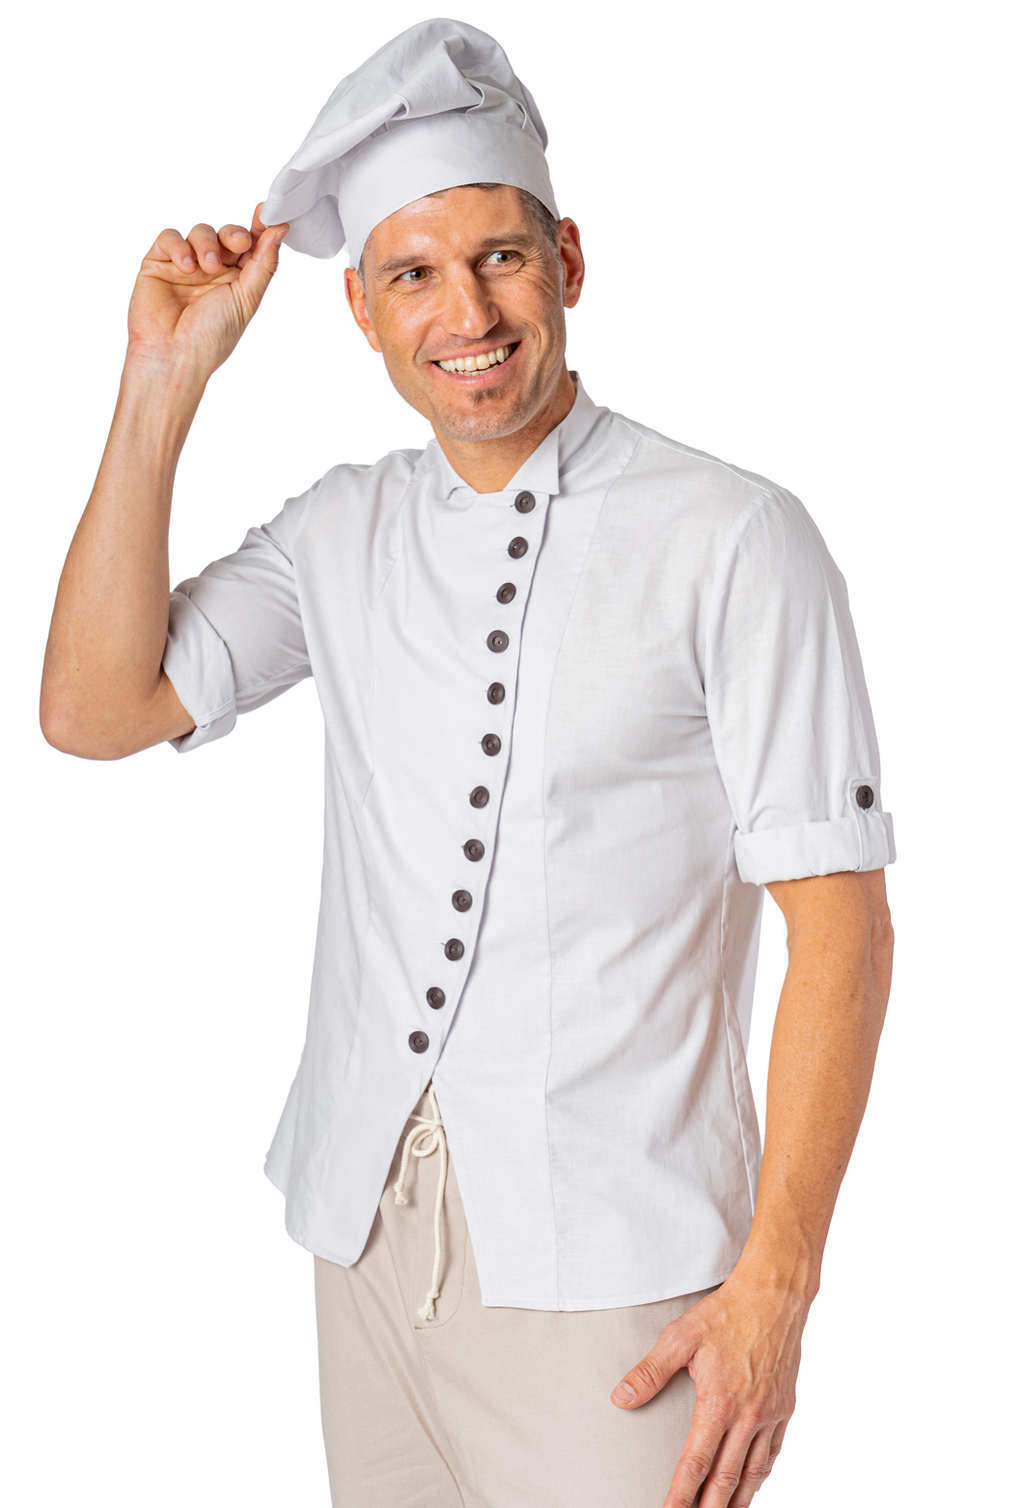 UNISEX CHEF JACKET W/ SLEEVE PICKER ORGANIC FABRIC